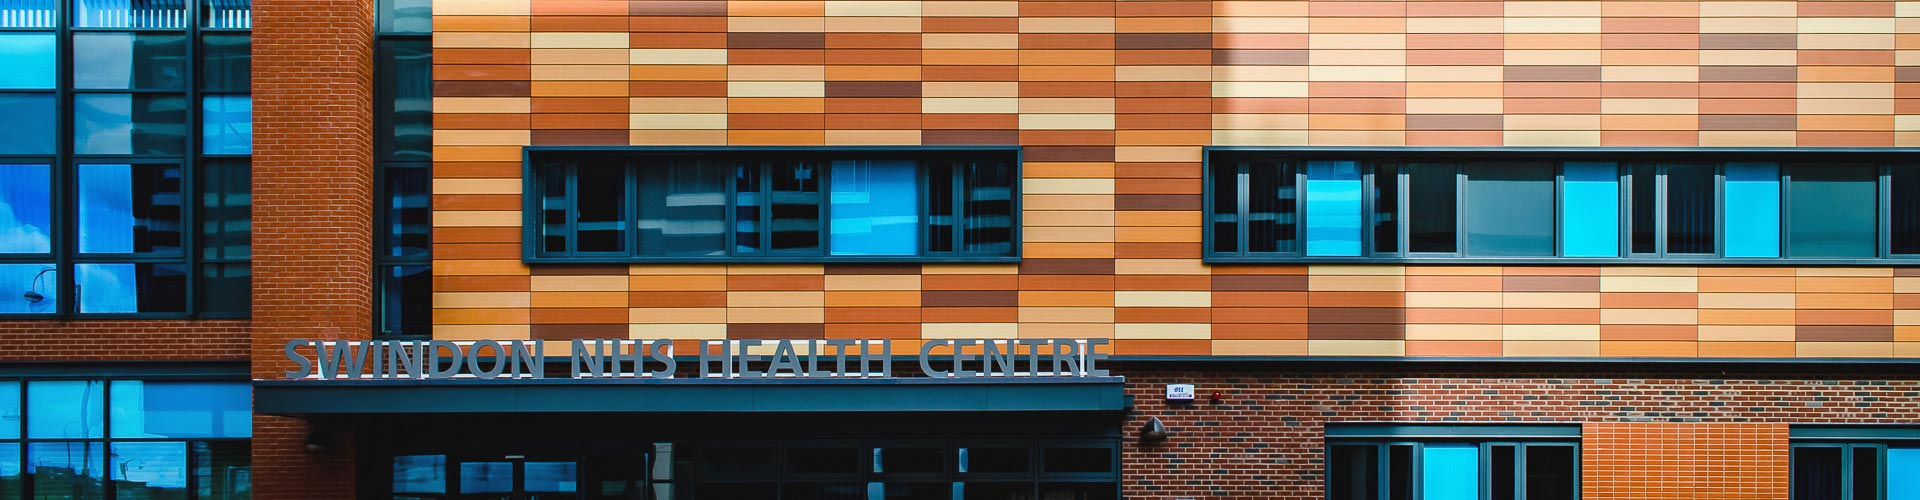 T & T Facades Swindon Health Centre (1 Of 1)